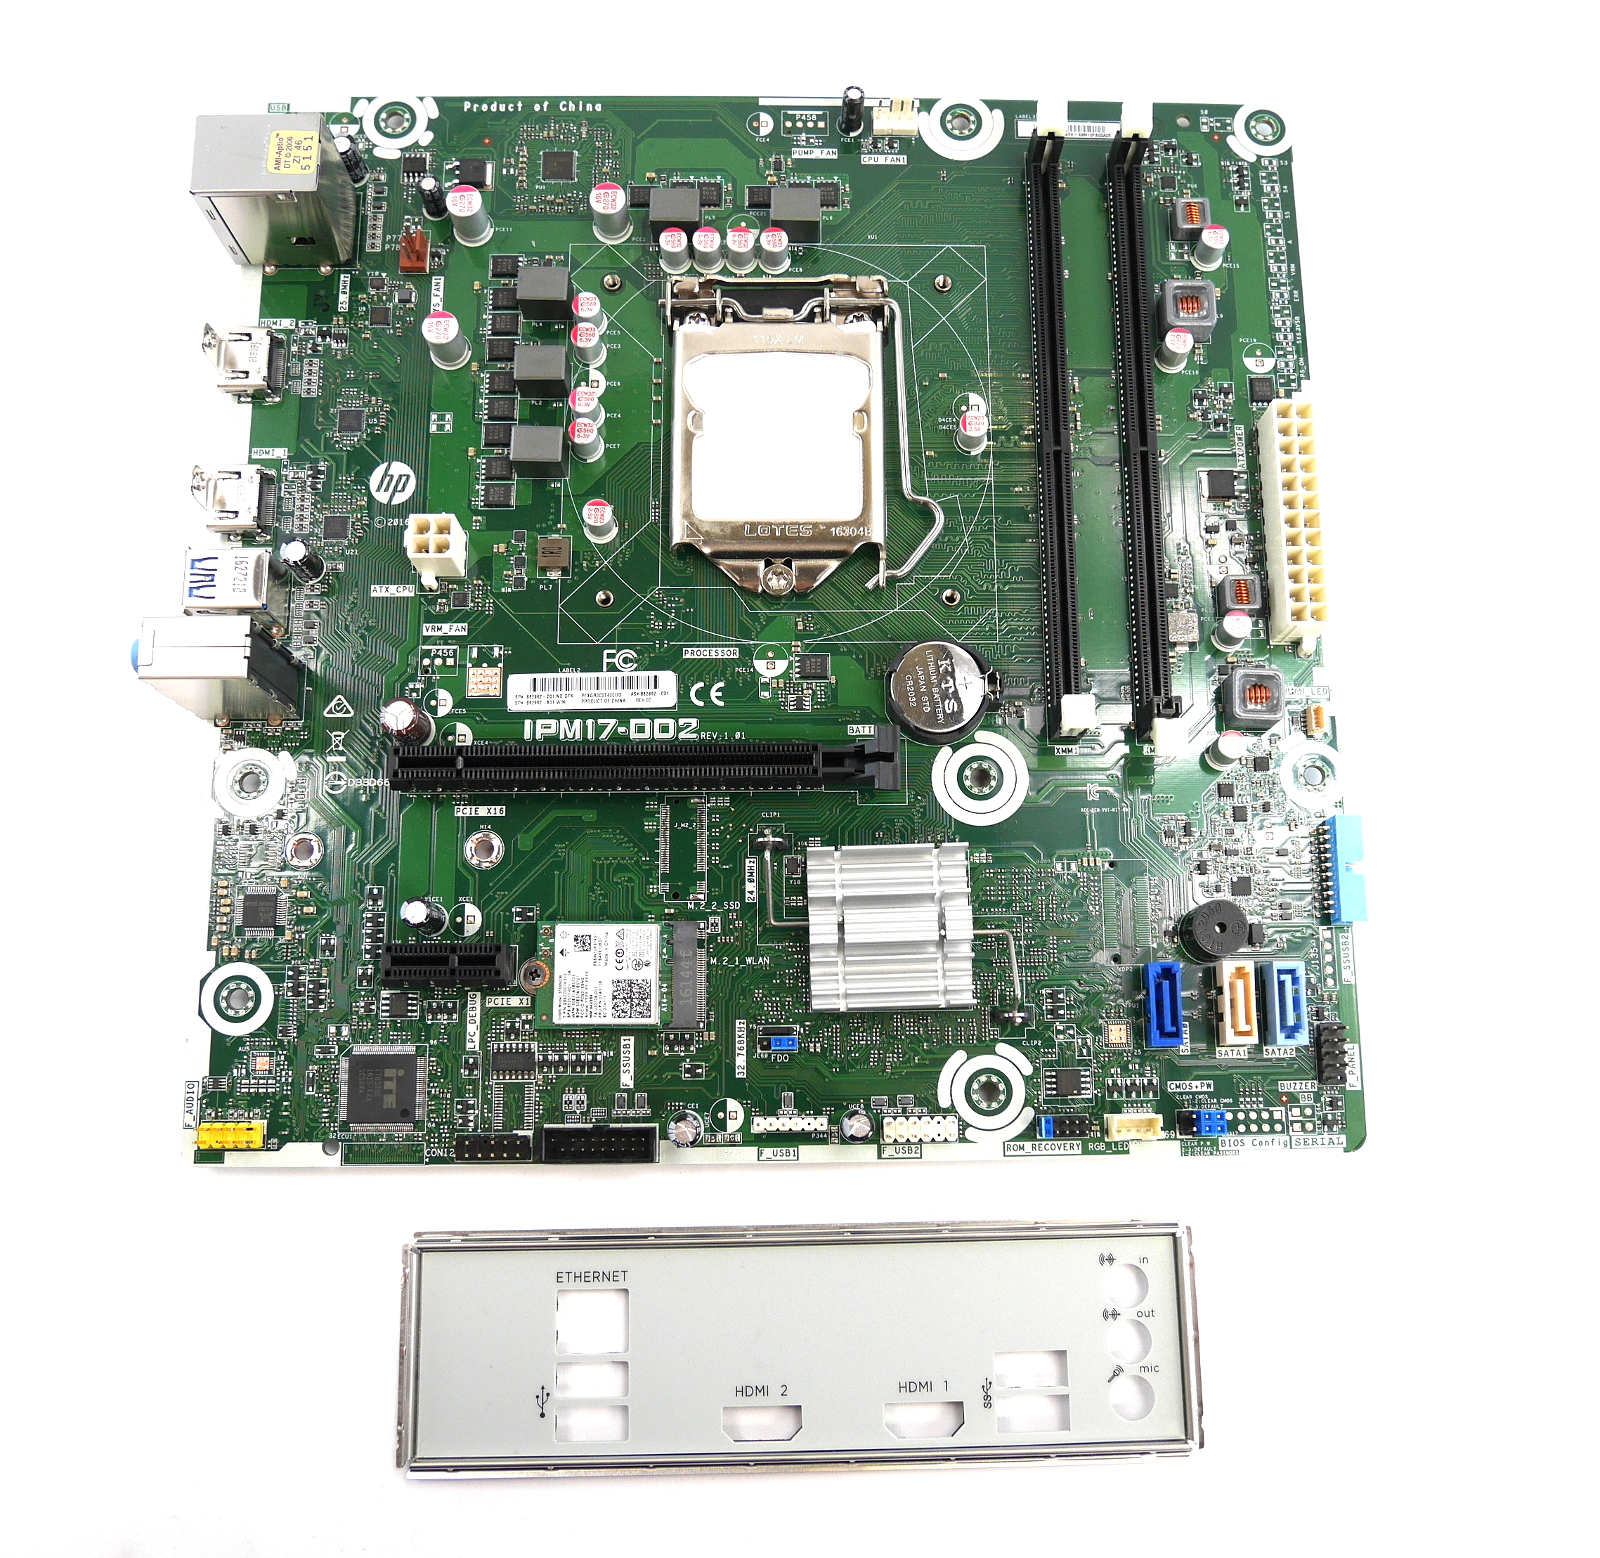 HP 862992-001 IPM17-DD2 REV:1.01 Motherboard Intel LGA1151 6th Gen.